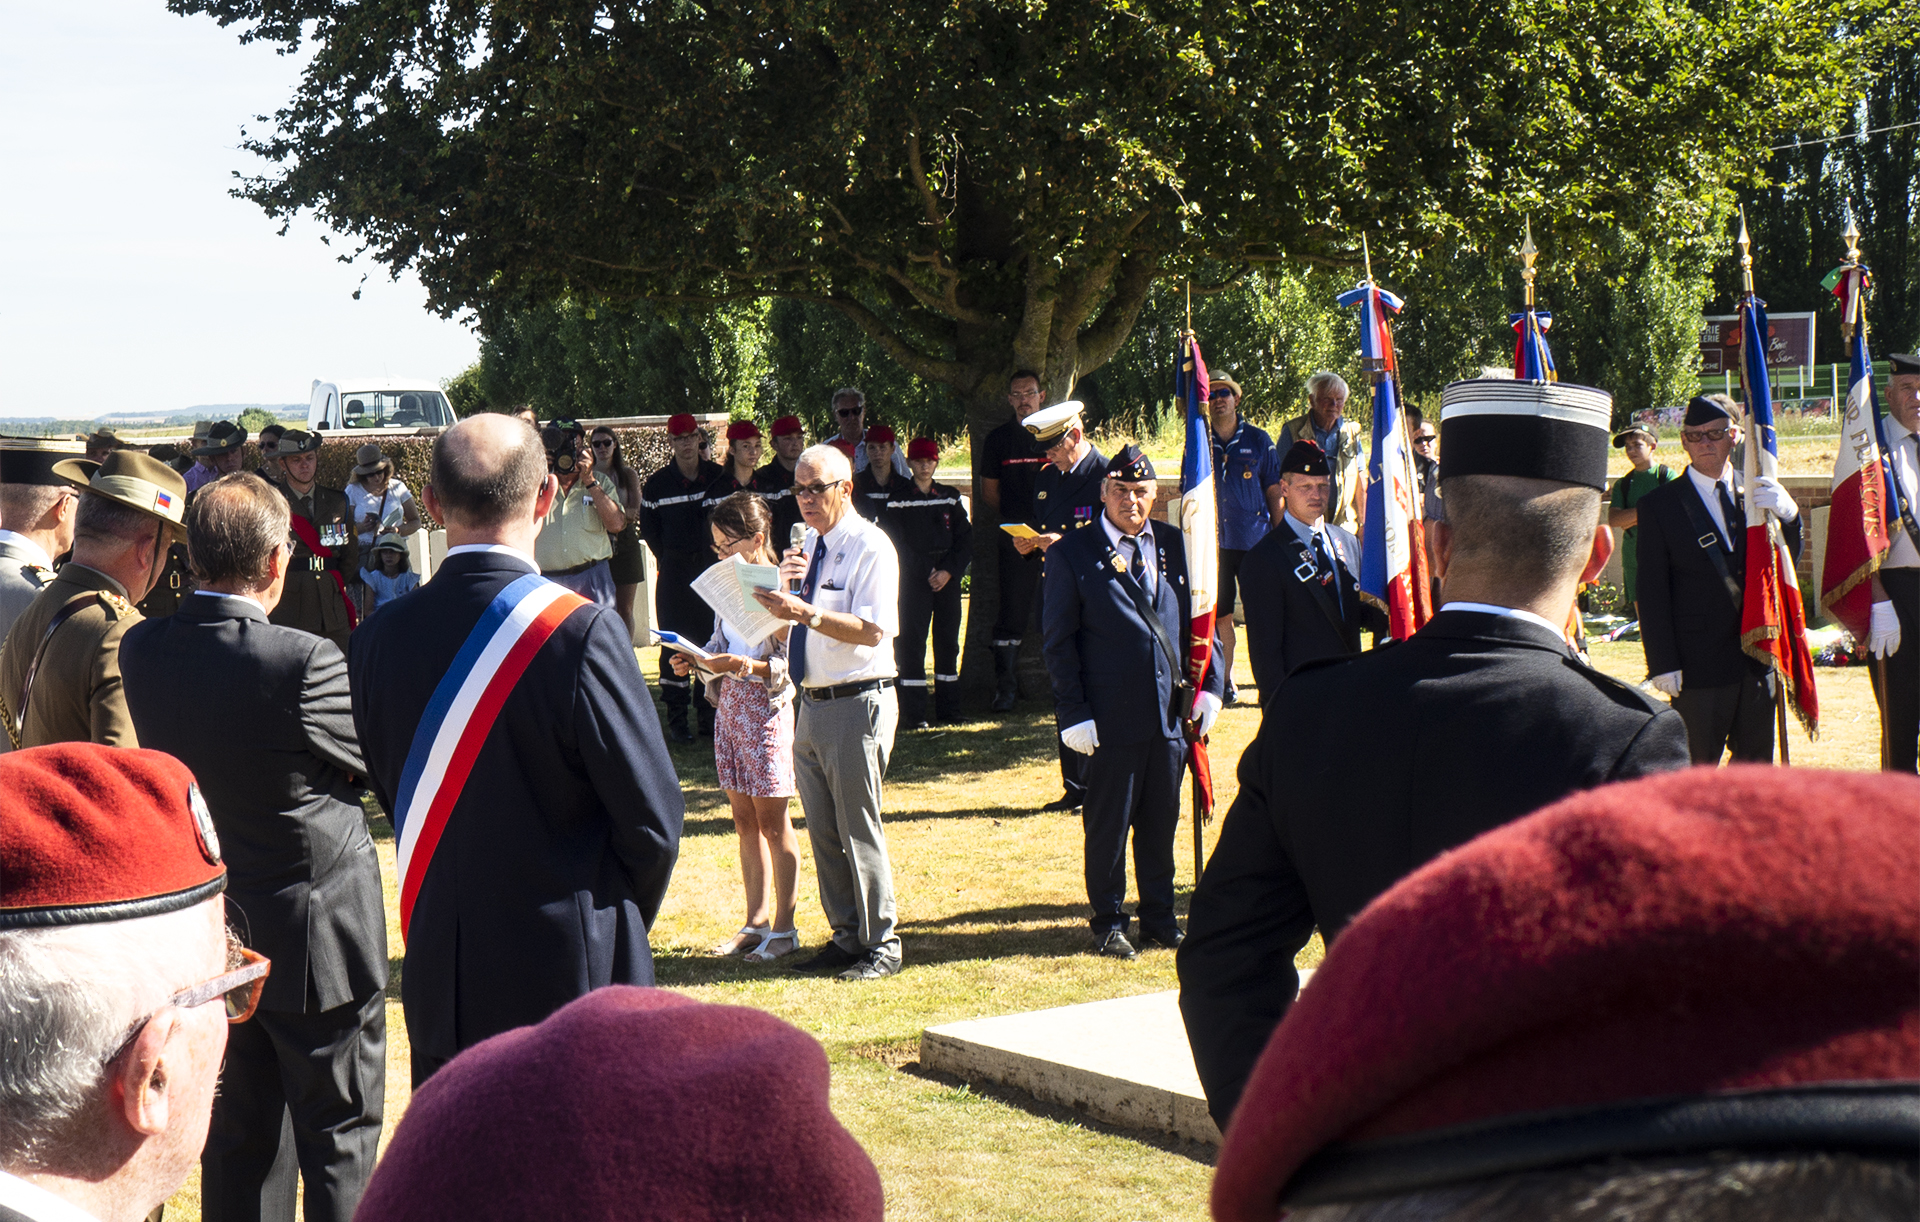 The ceremonies begin at Heath Cemetery in Harbonnières, France with representatives from Australia, Britain, Canada and France.